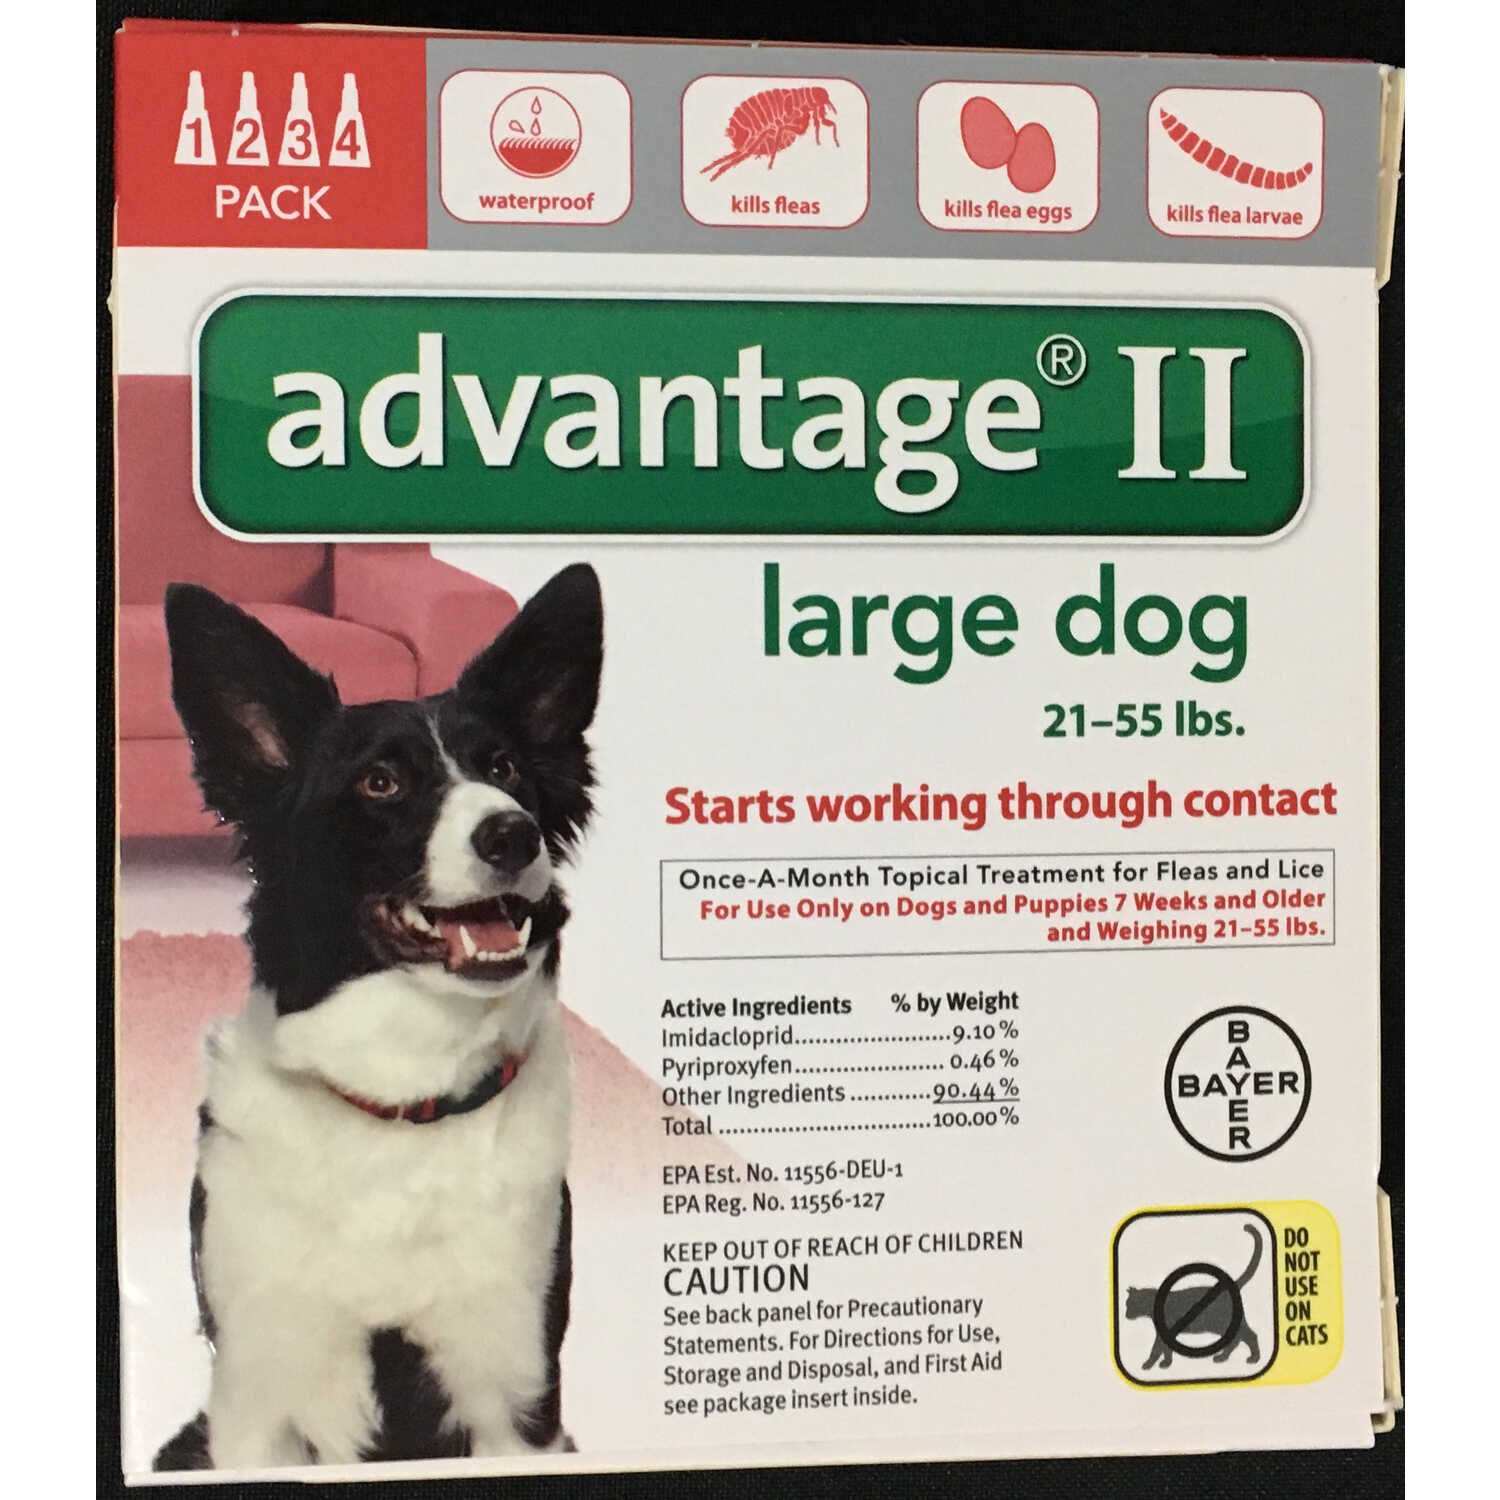 Bayer  Advantage II  Liquid  Flea Drops  Dog  4 pk